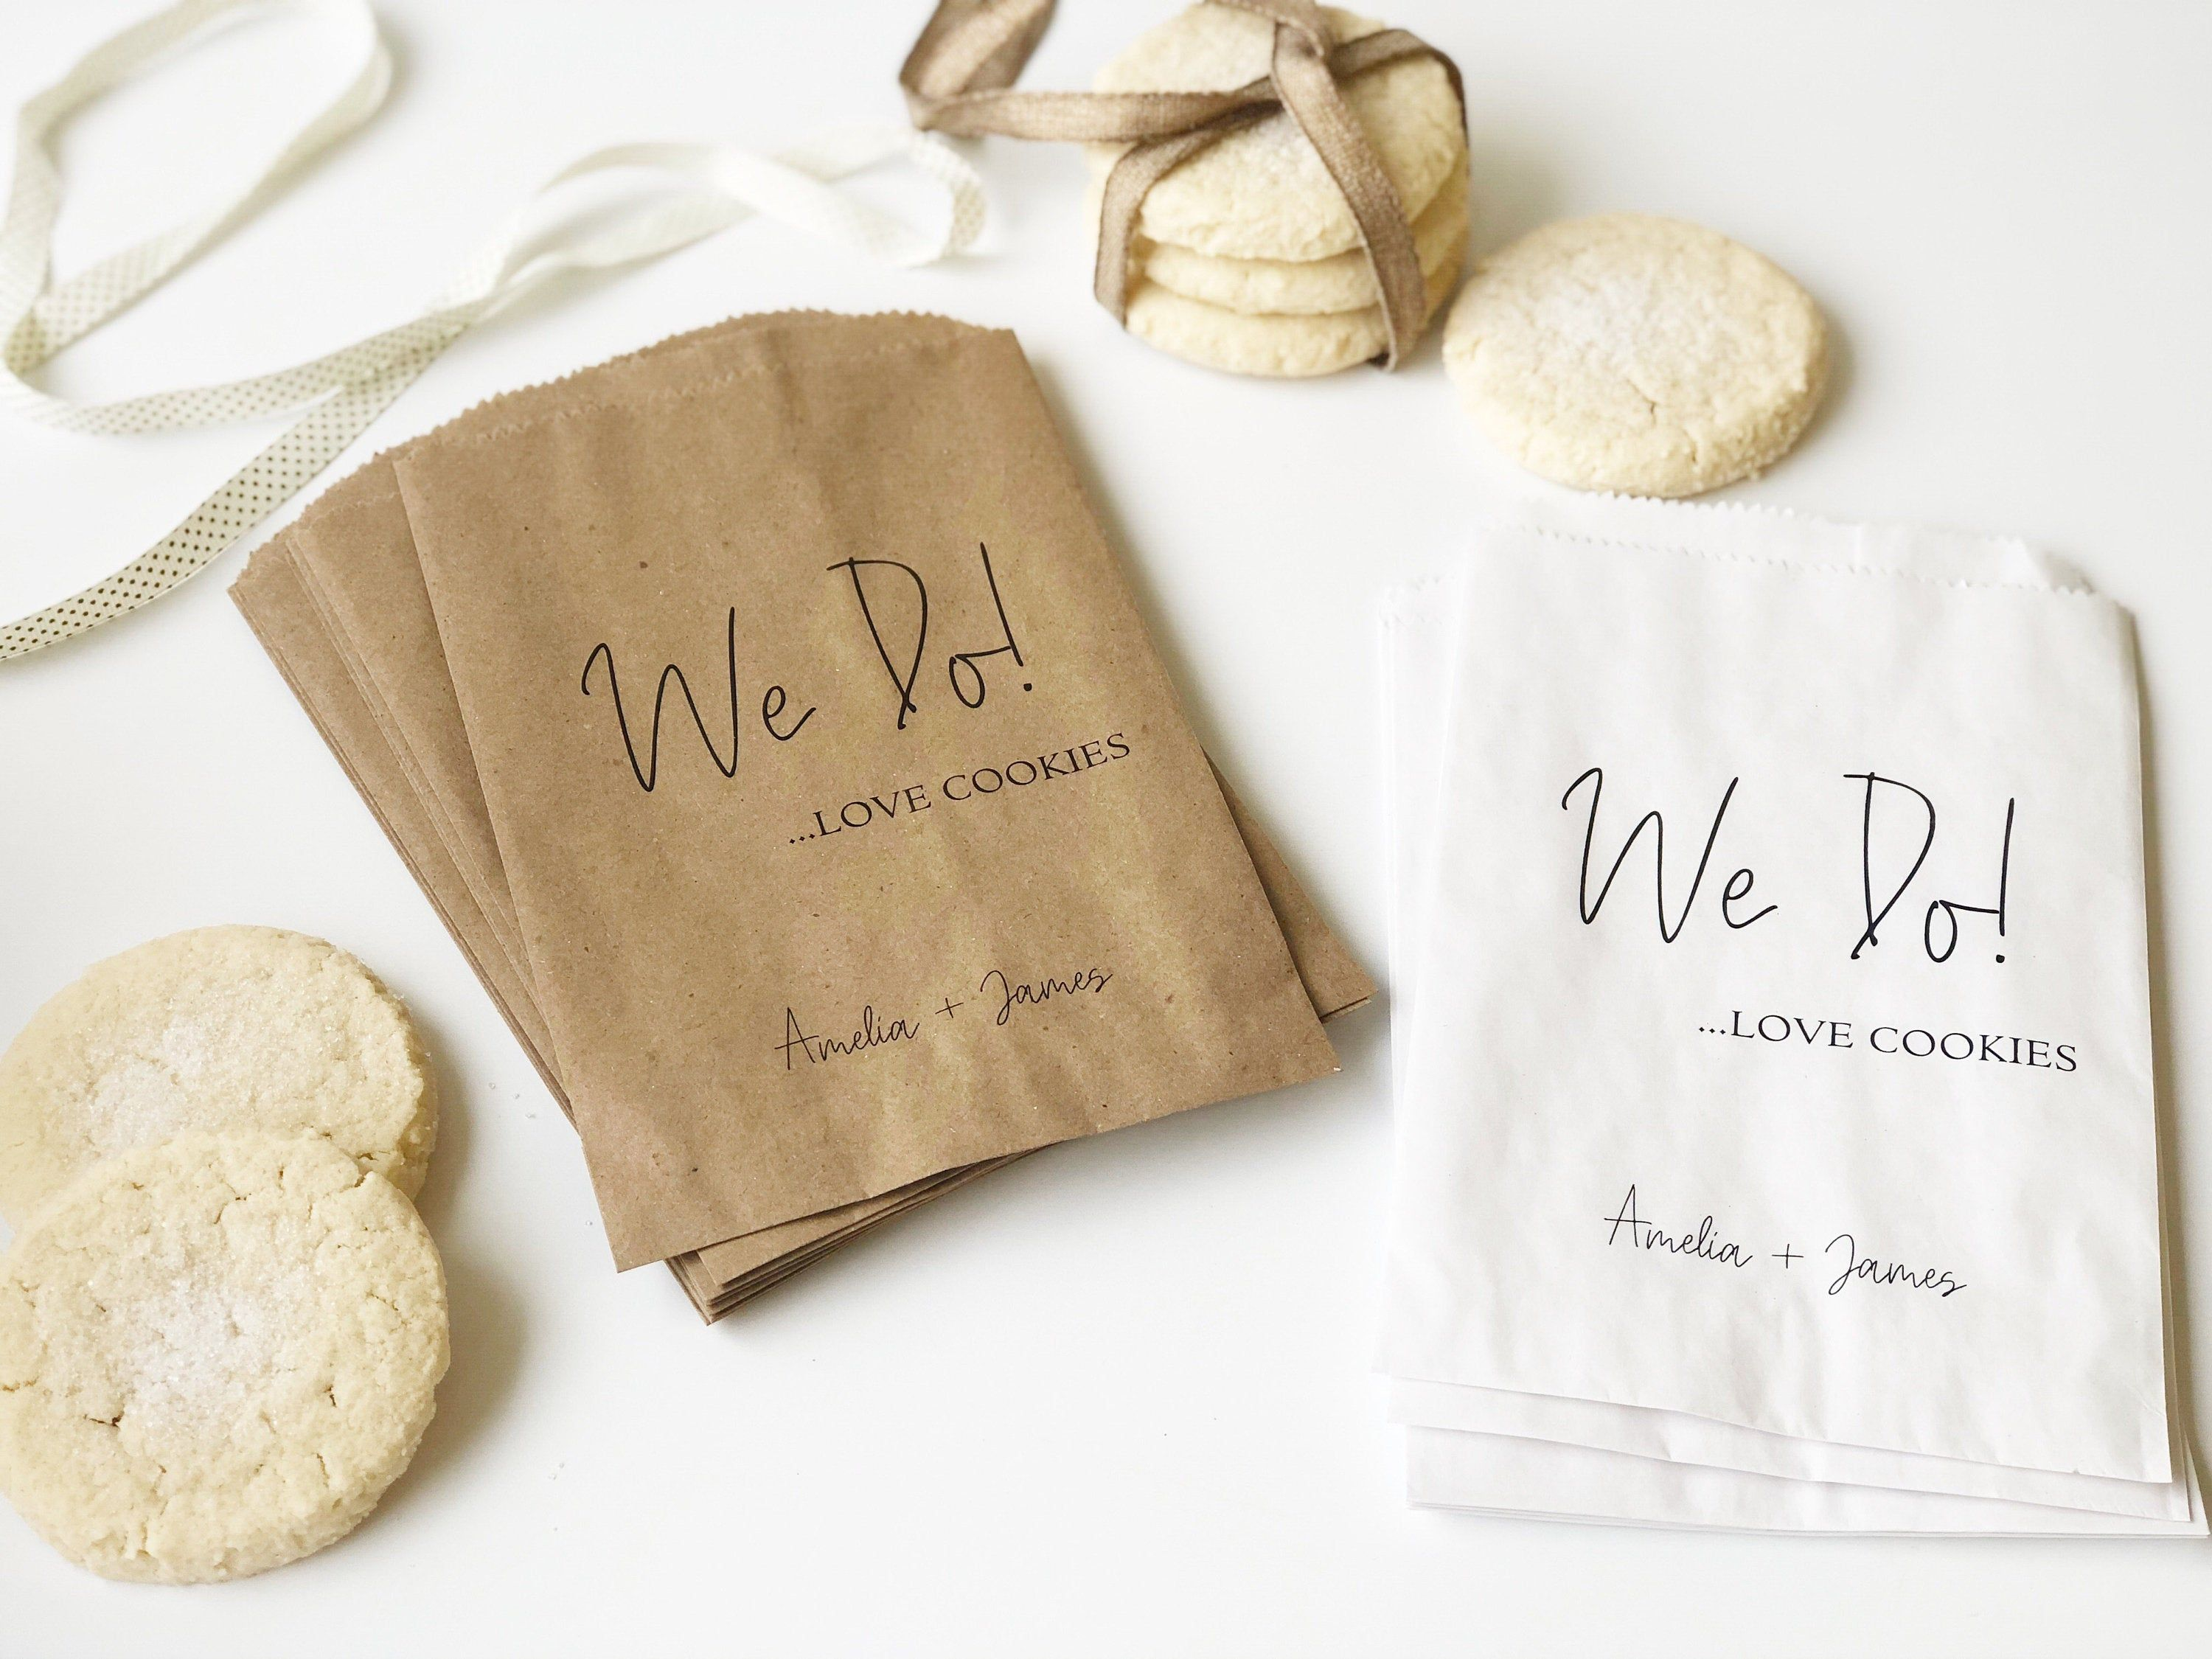 Wedding Cookie Bags Personalized Treat Bags For Your Wedding Cookie Bar Or Buffet Sets Of 25 In 2020 Wedding Cookies Bags Wedding Cookies Cookie Bar Wedding